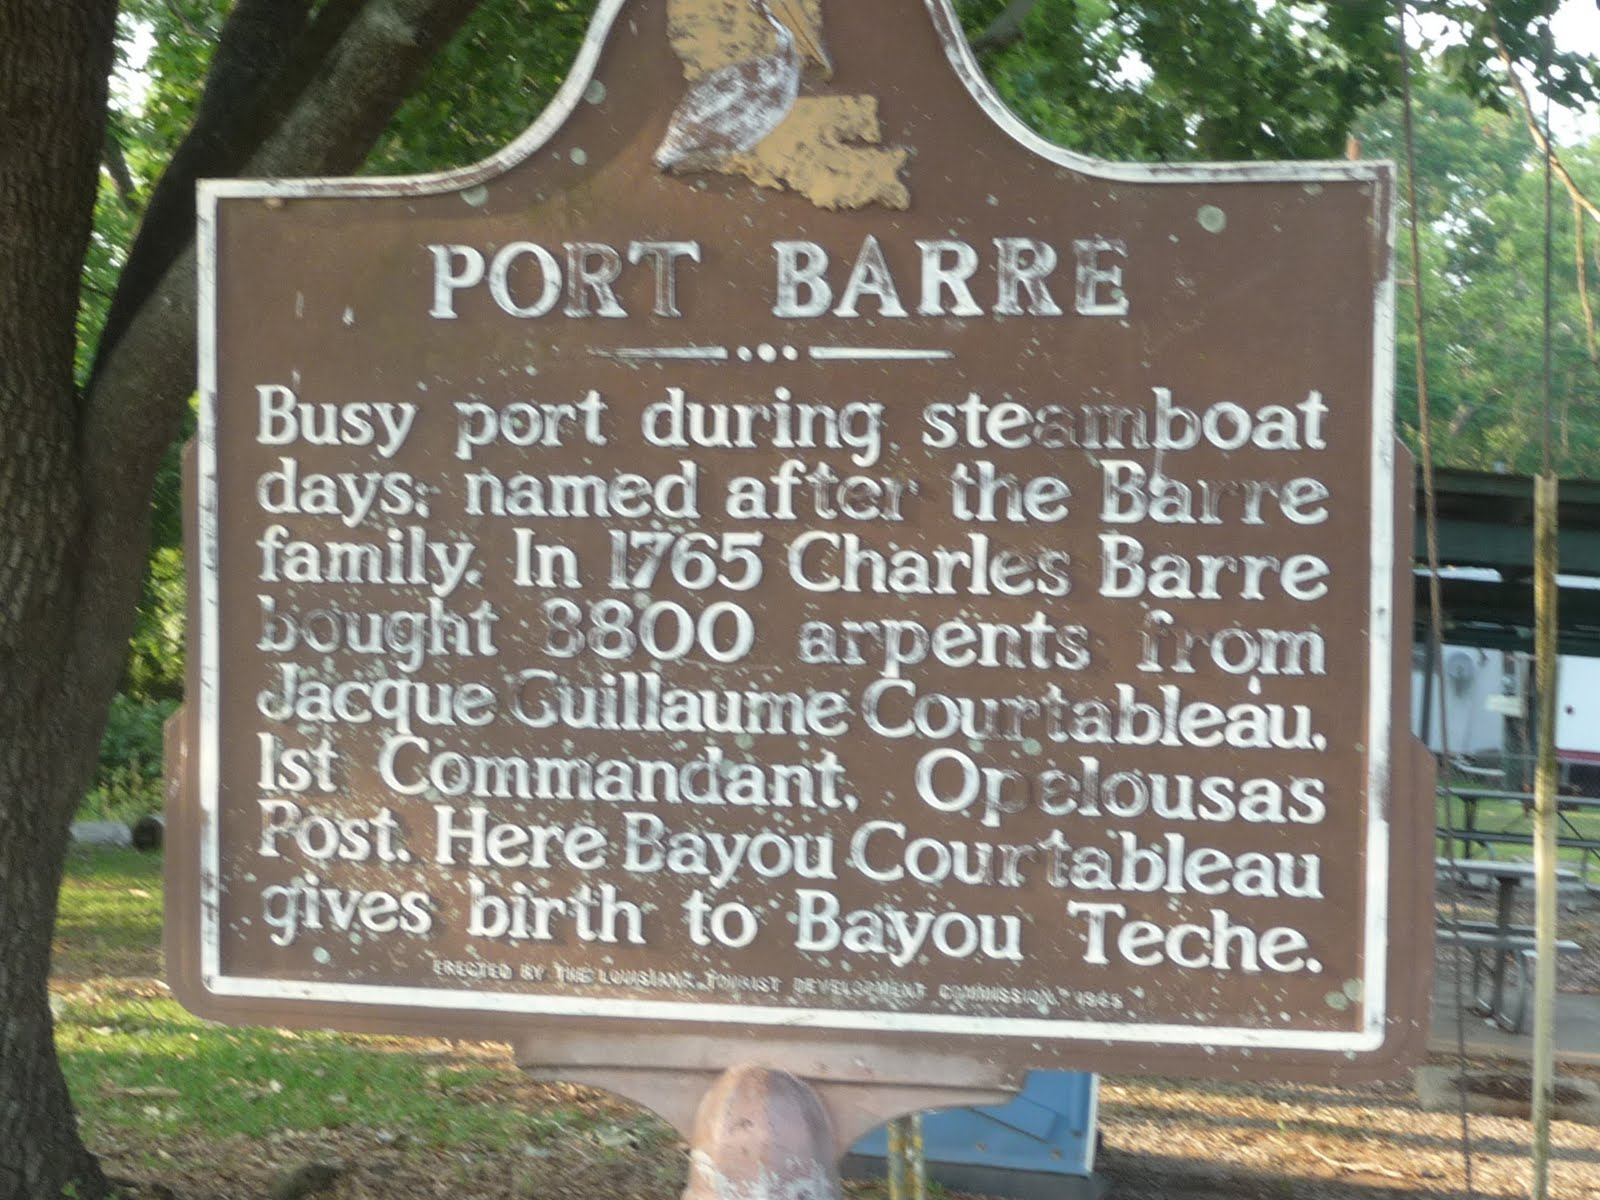 port barre senior personals Sign up today to start meeting port barre louisiana catholic singles port barre, la senior, young-adult.